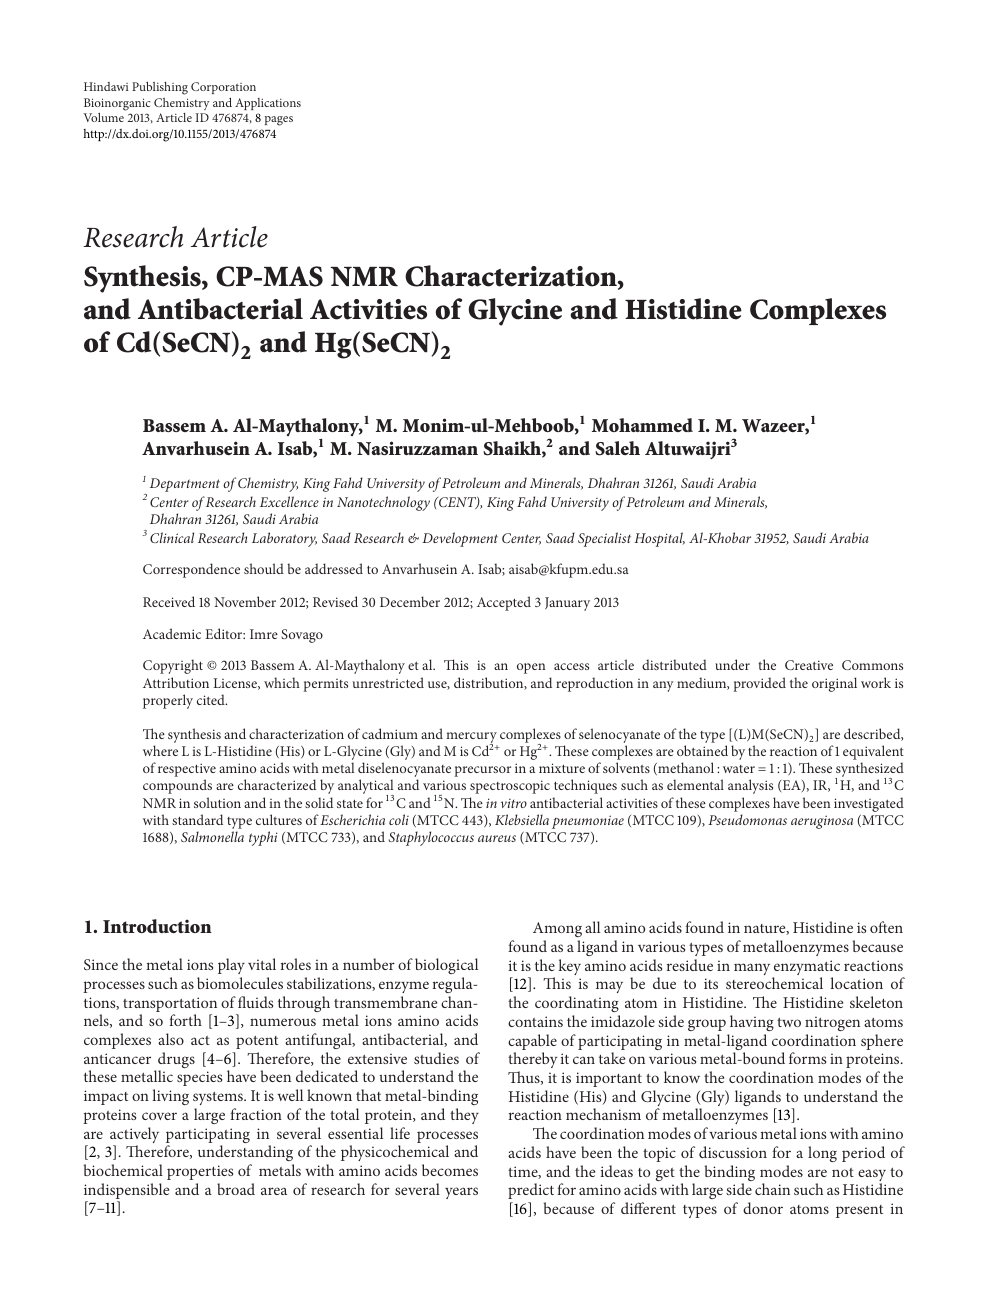 Synthesis, CP-MAS NMR Characterization, and Antibacterial